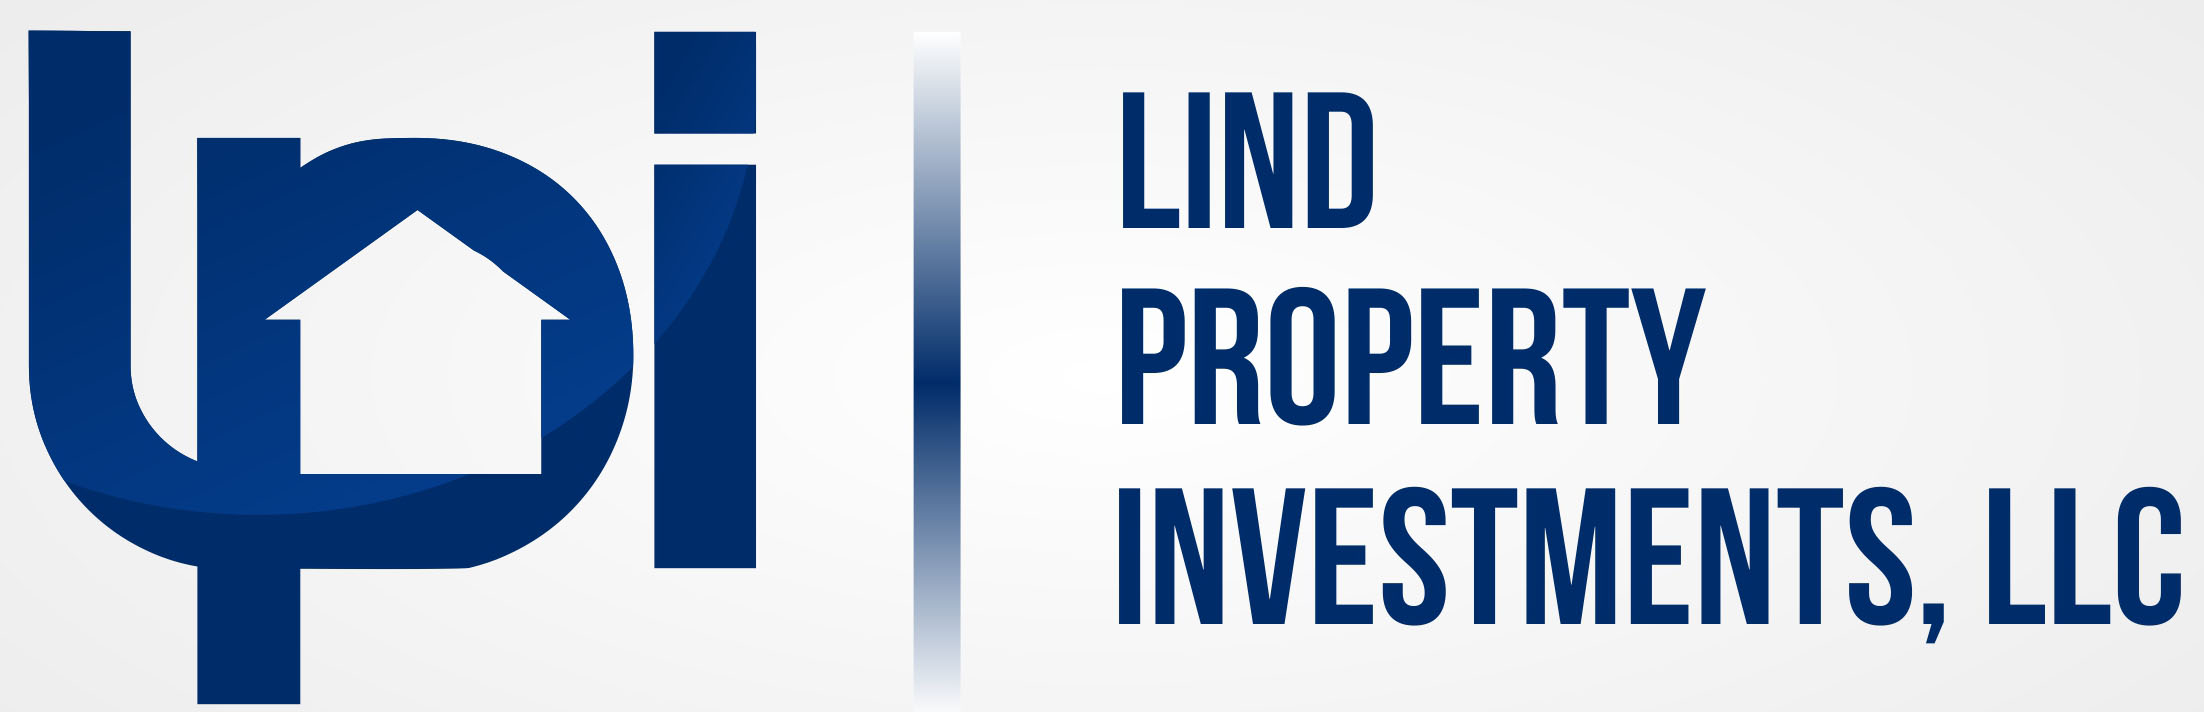 Lind Property Investments, LLC